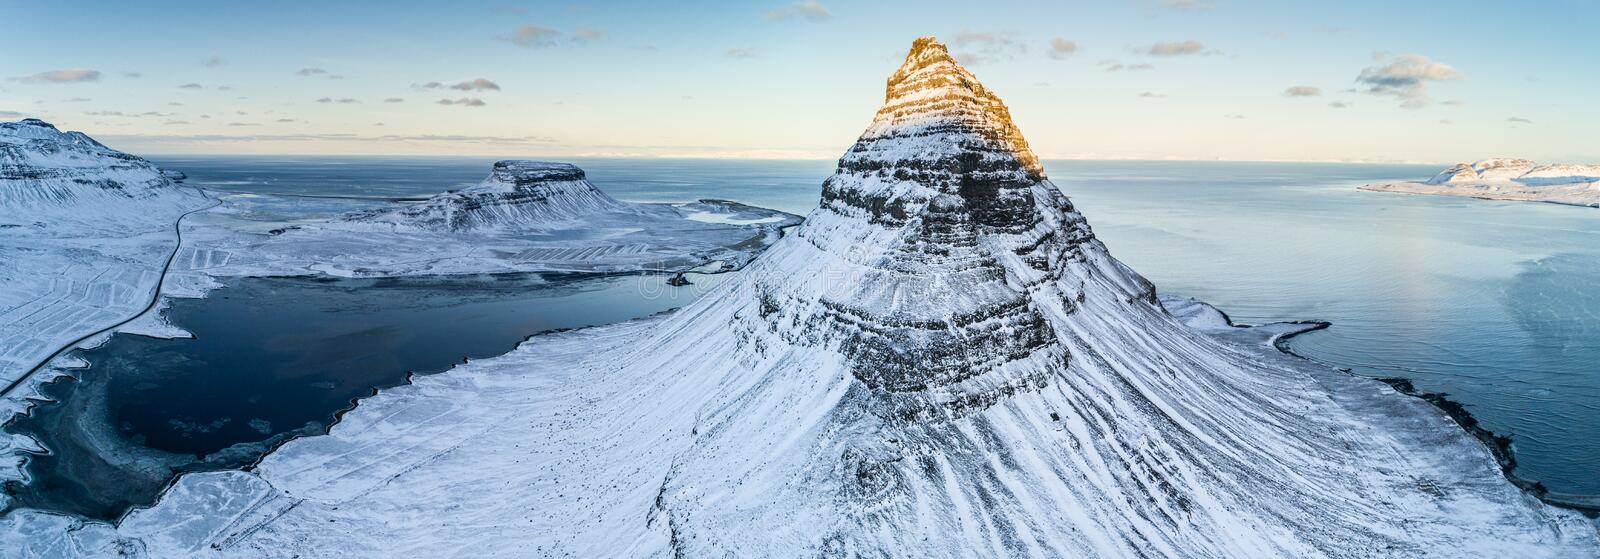 Famous Kirkjufell mountain in winter, Iceland. Famous Kirkjufell waterfall with mountain in winter, Iceland, Europe stock images